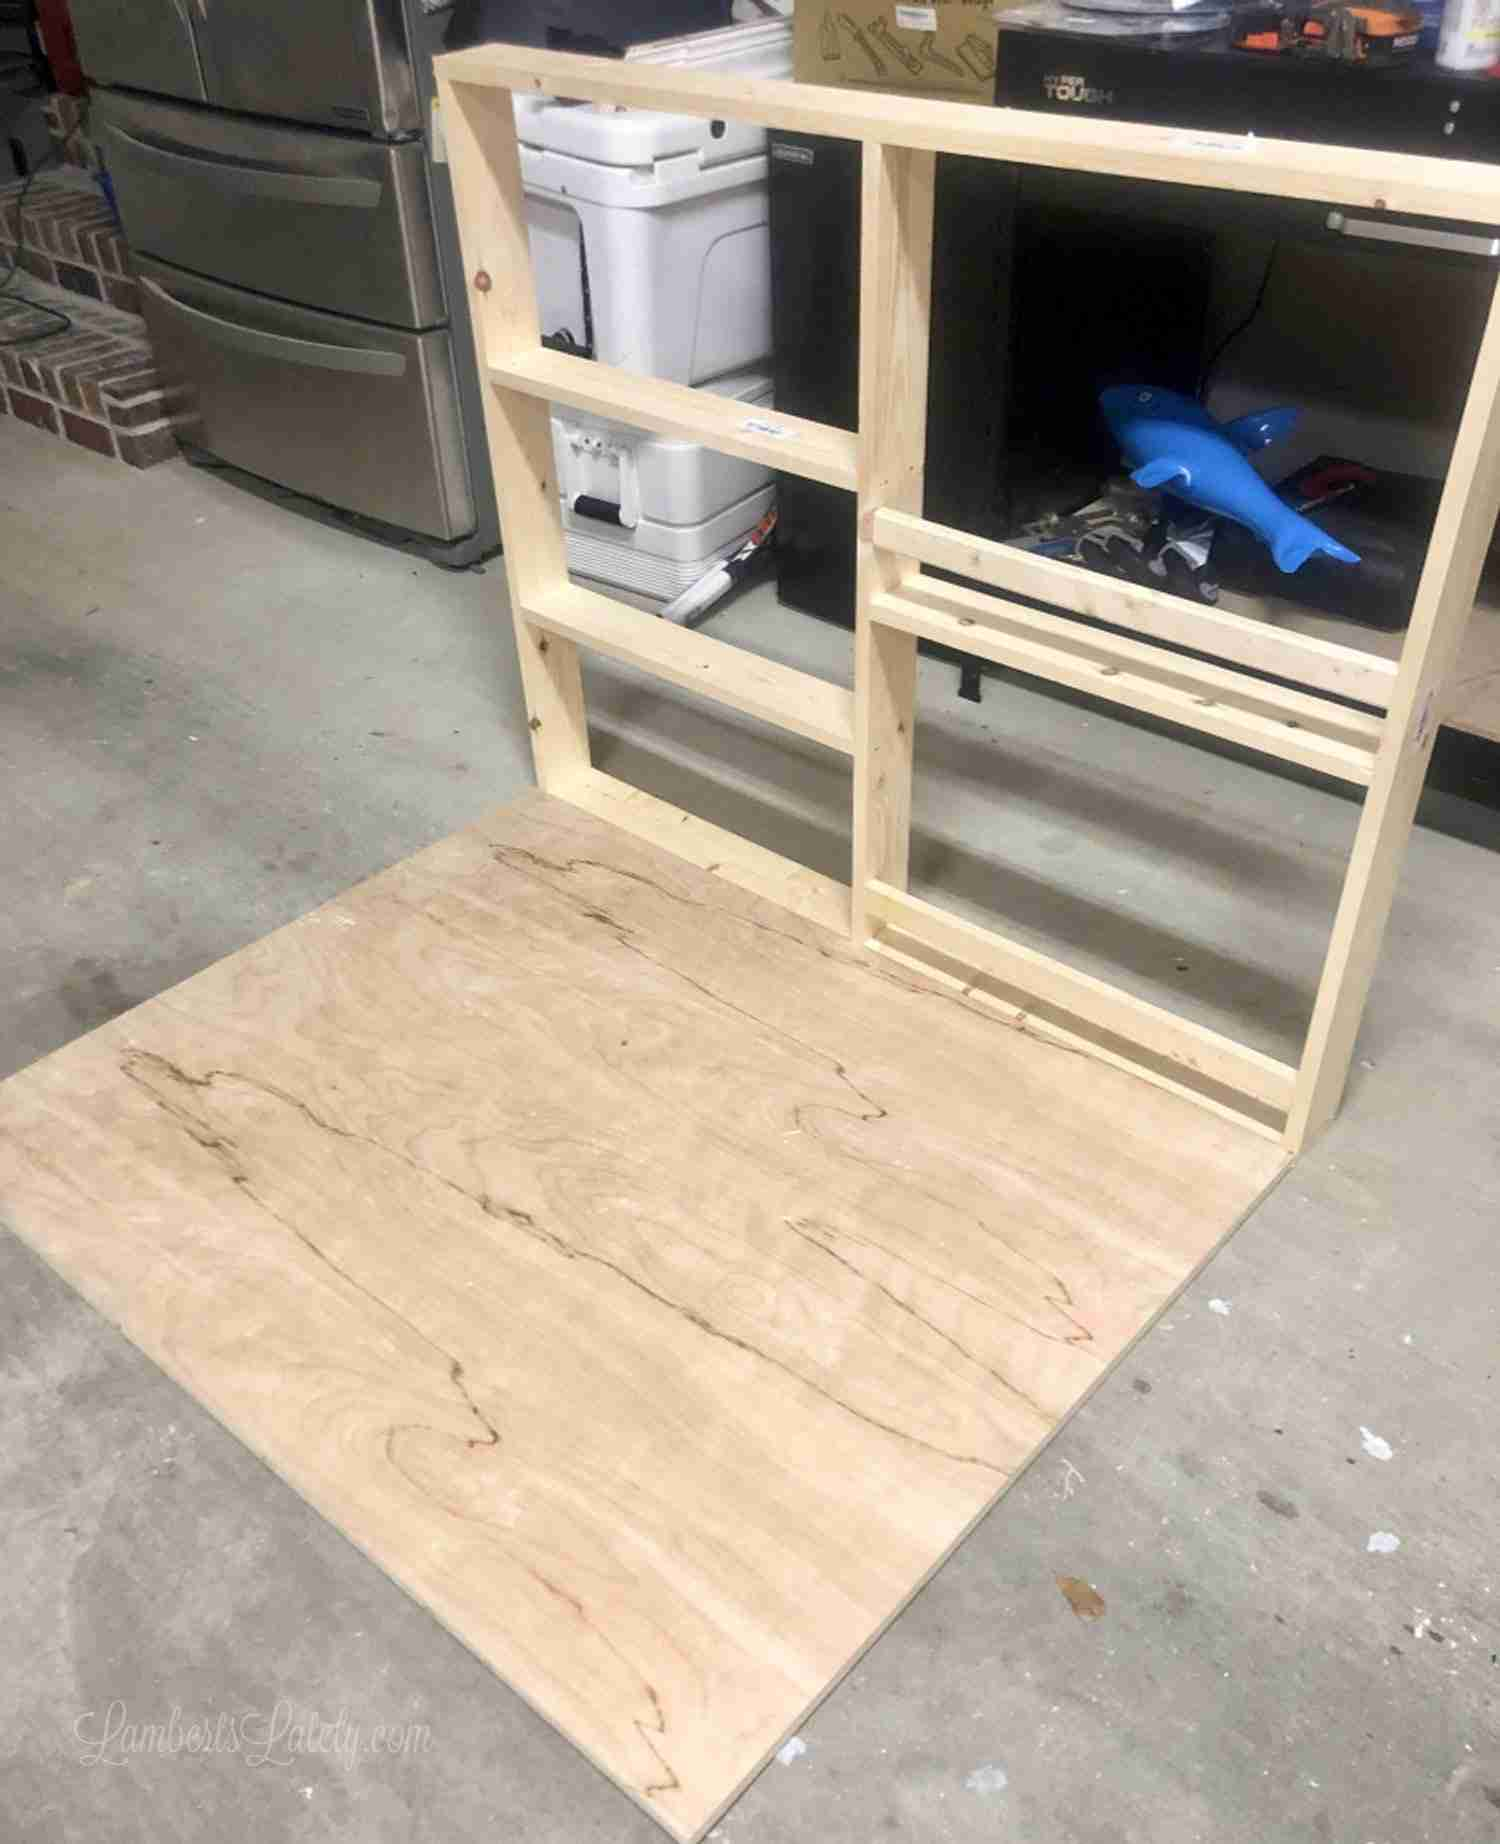 How To Build A Diy Murphy Bed With Desk And Bookcases Part 2 Lamberts Lately